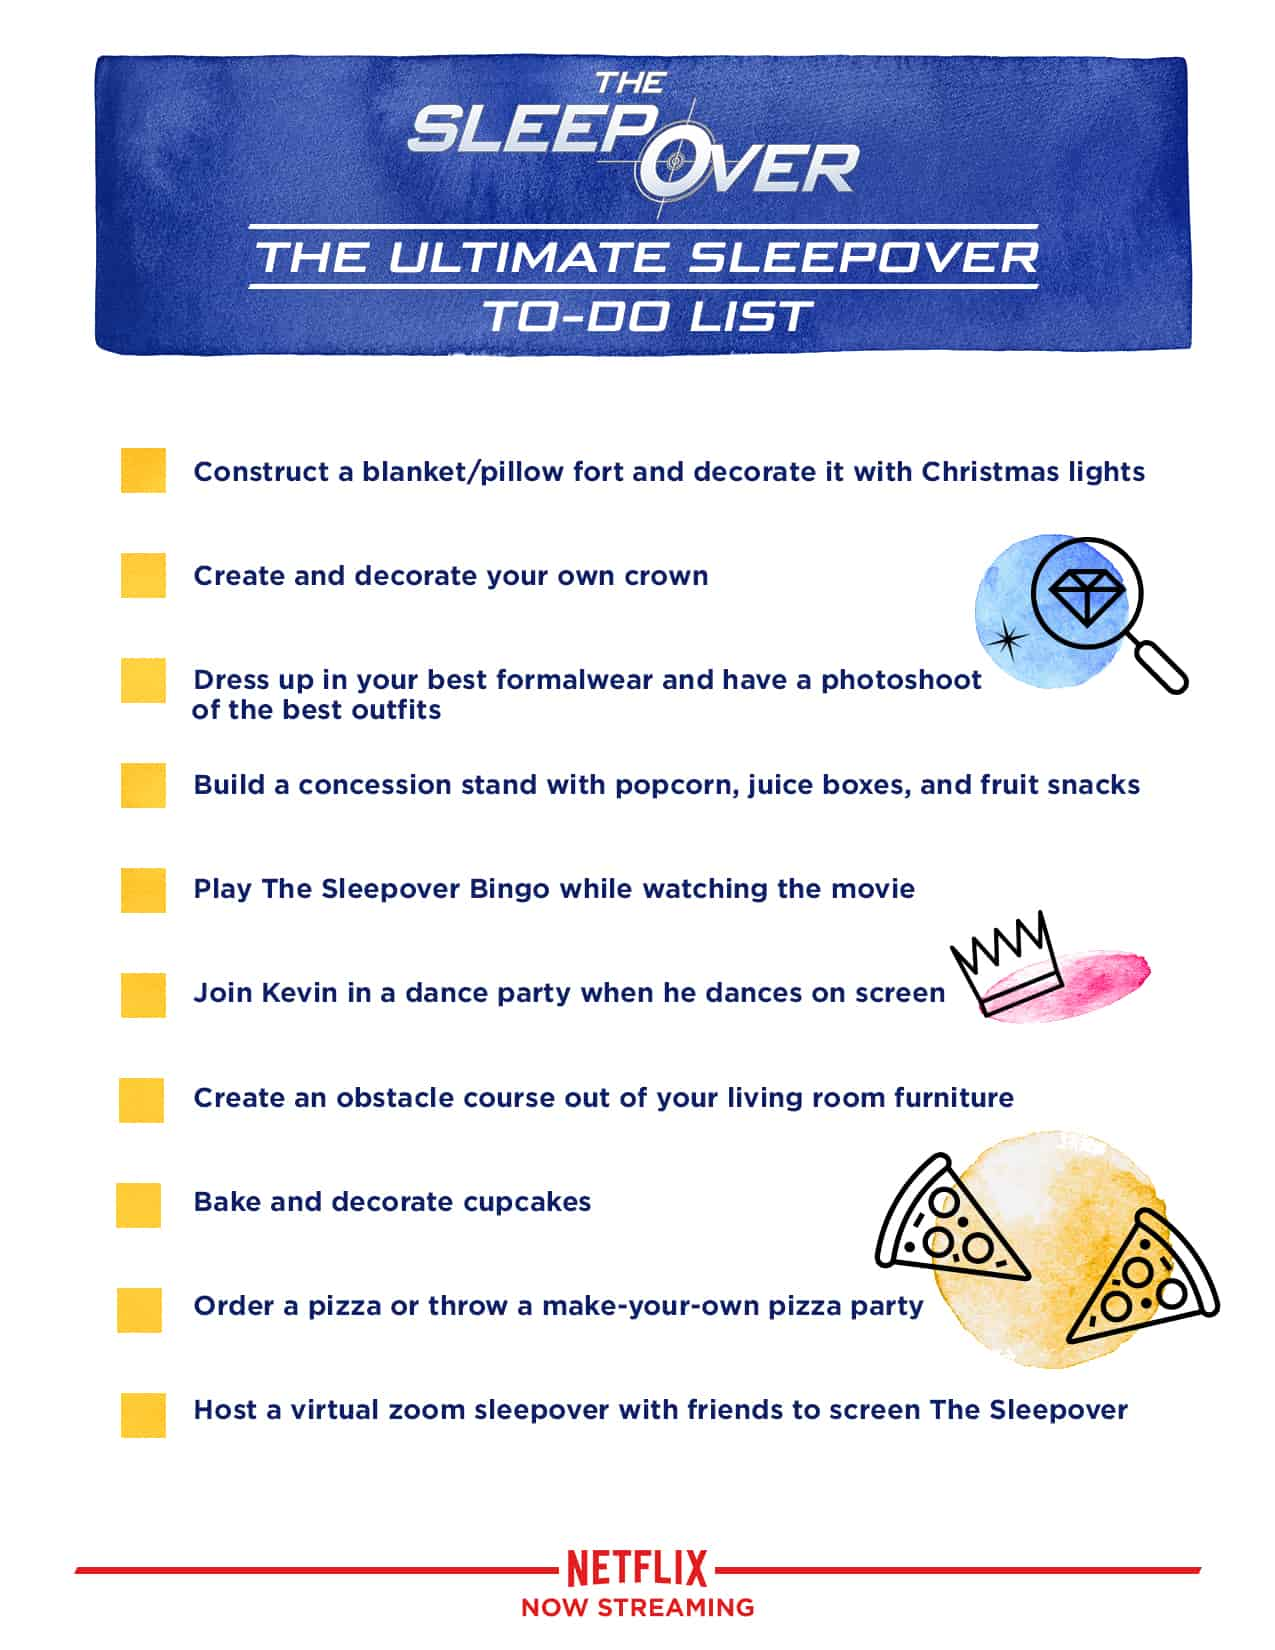 The Ultimate Sleepover Checklist